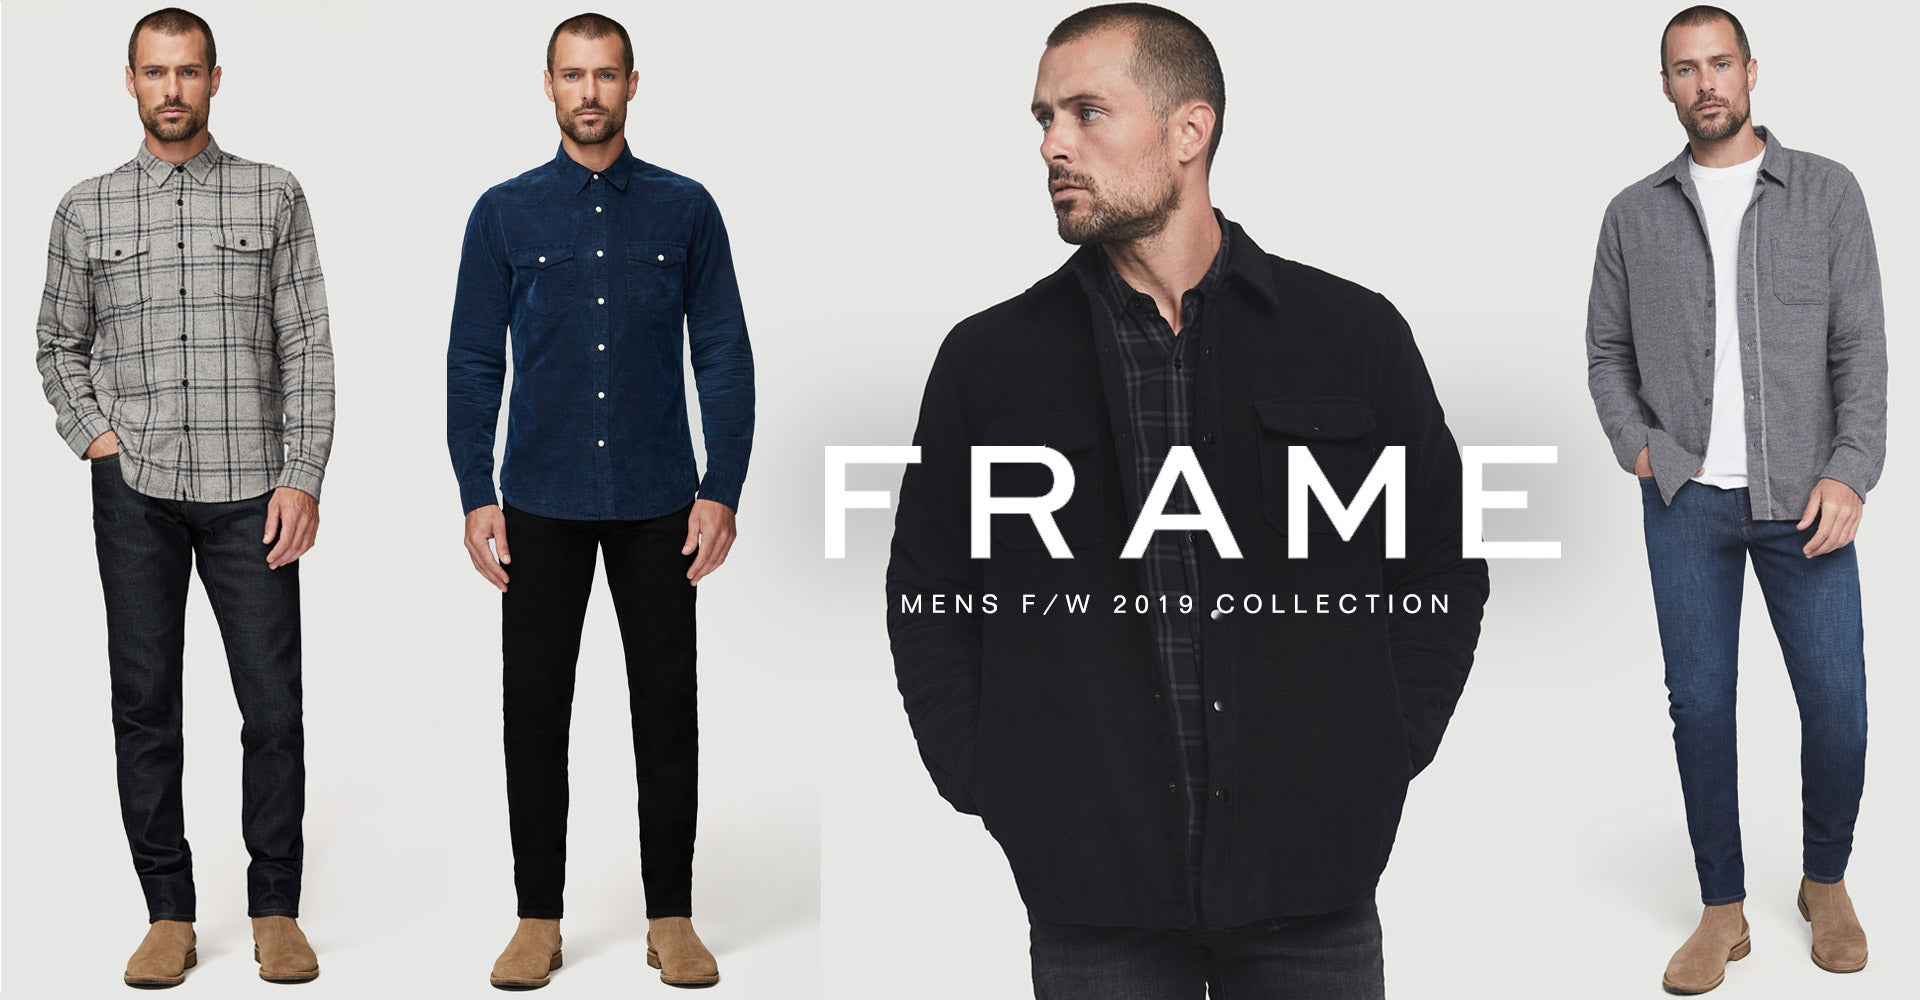 Frame Fall / Winter 2019 Menswear Collection Shop the NEW Frame Fall / Winter 2019 Menswear Collection Shop the NEW Frame Fall / Winter 2019 Menswear Collection